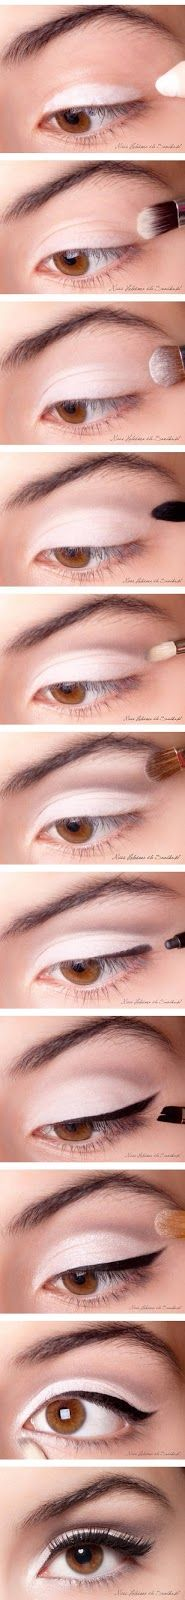 Black and white eye makeup fashion for ladies:-  Follow the following steps as shown in the above picture.......